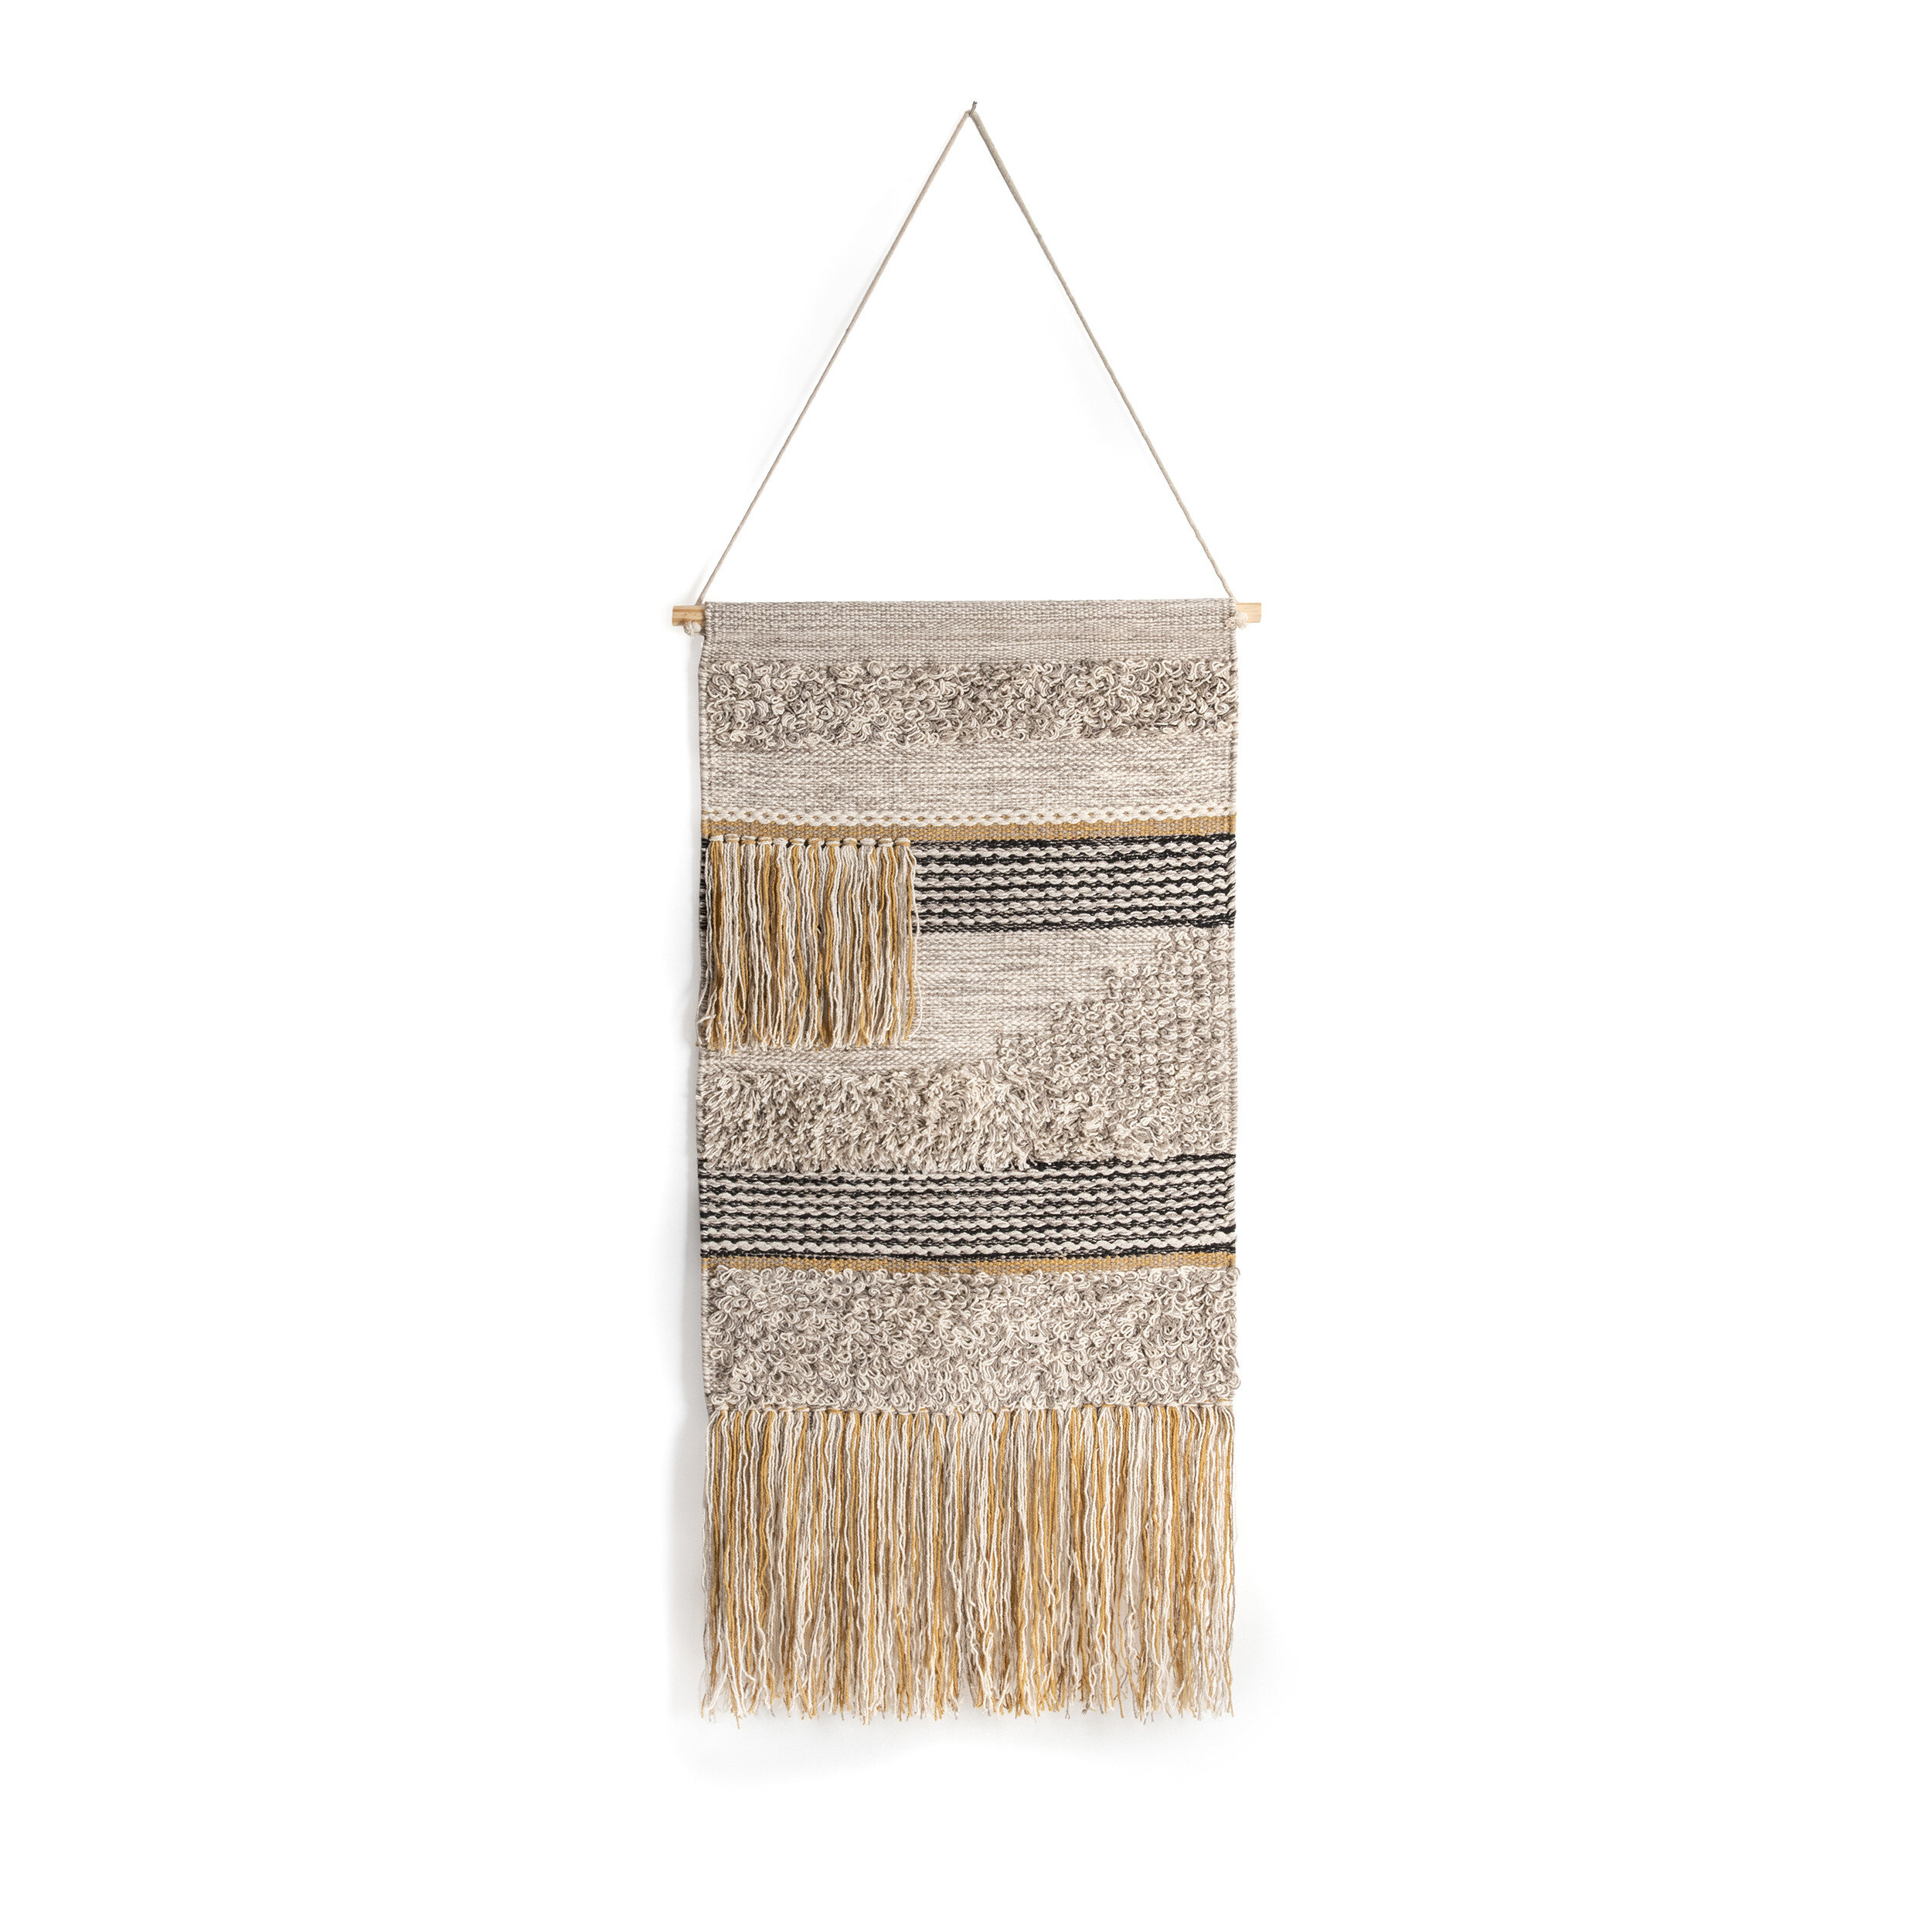 Rod Tan Tapestries You'll Love In 2021 | Wayfair Pertaining To Newest Blended Fabric Teresina Wool And Viscose Wall Hangings With Hanging Accessories Included (View 6 of 20)